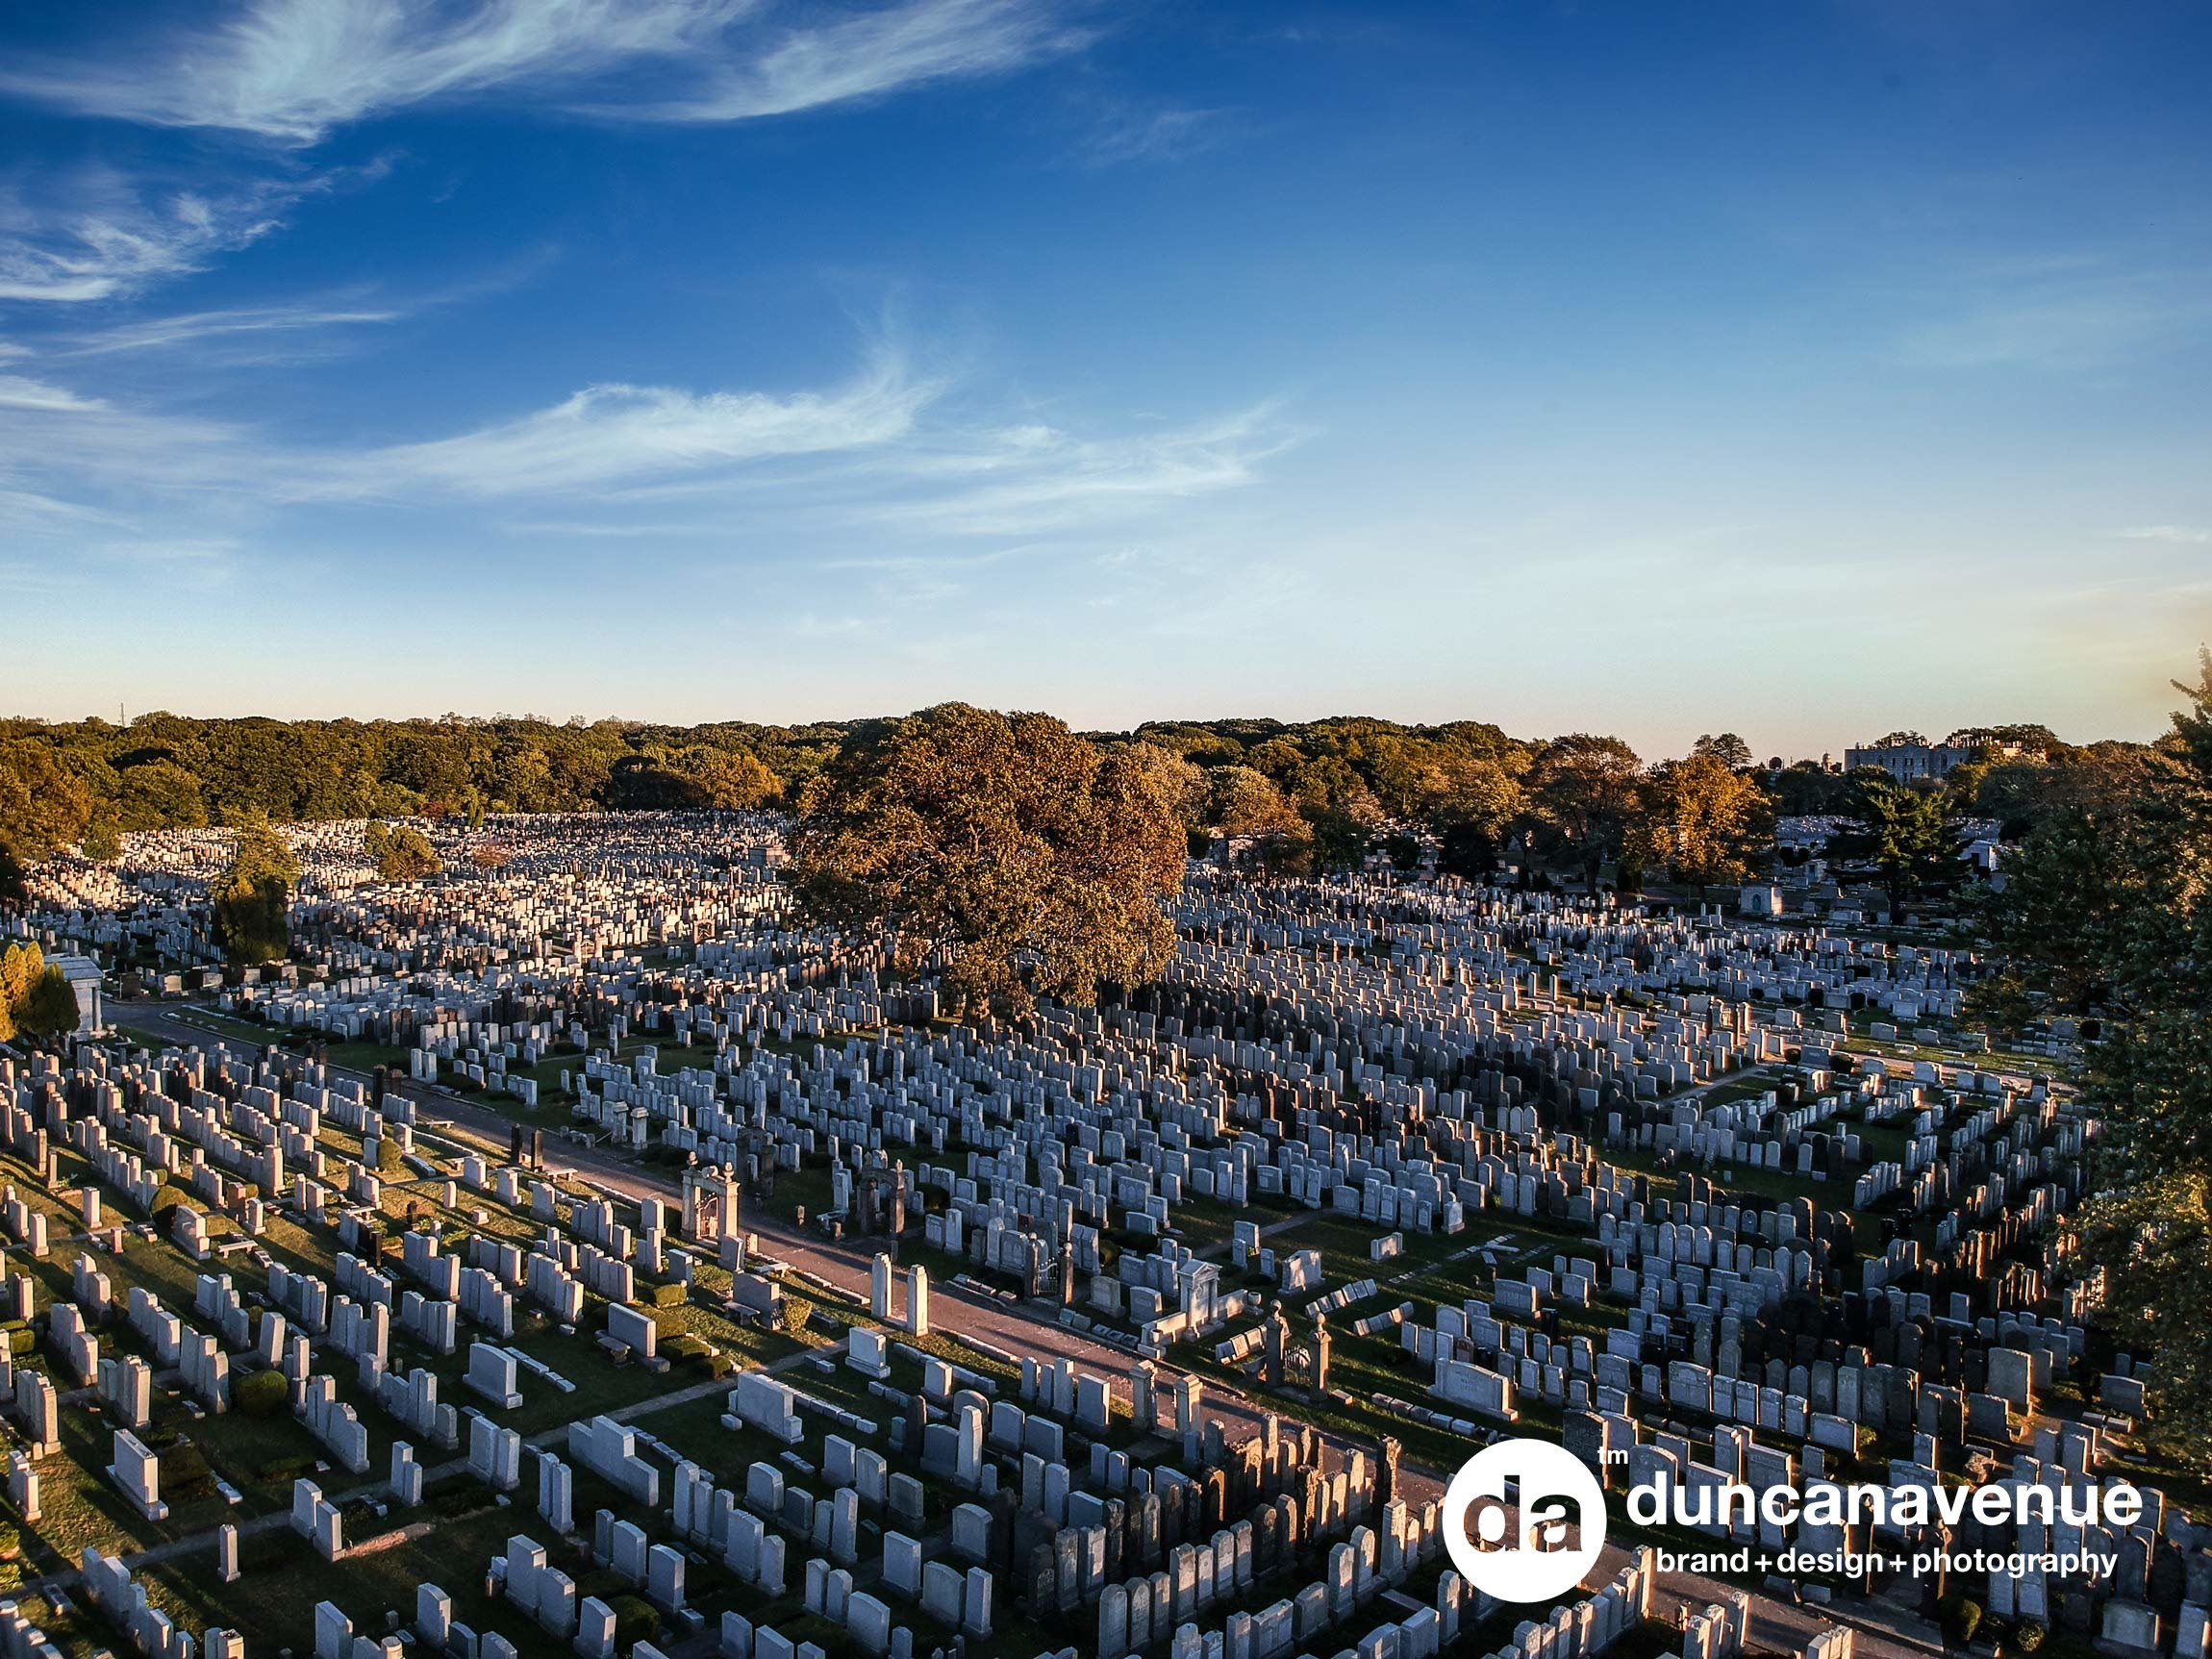 Mt. Lebanon, New York City, Queens, Cemetery - Commercial Real Estate Photography by Duncan Avenue Group